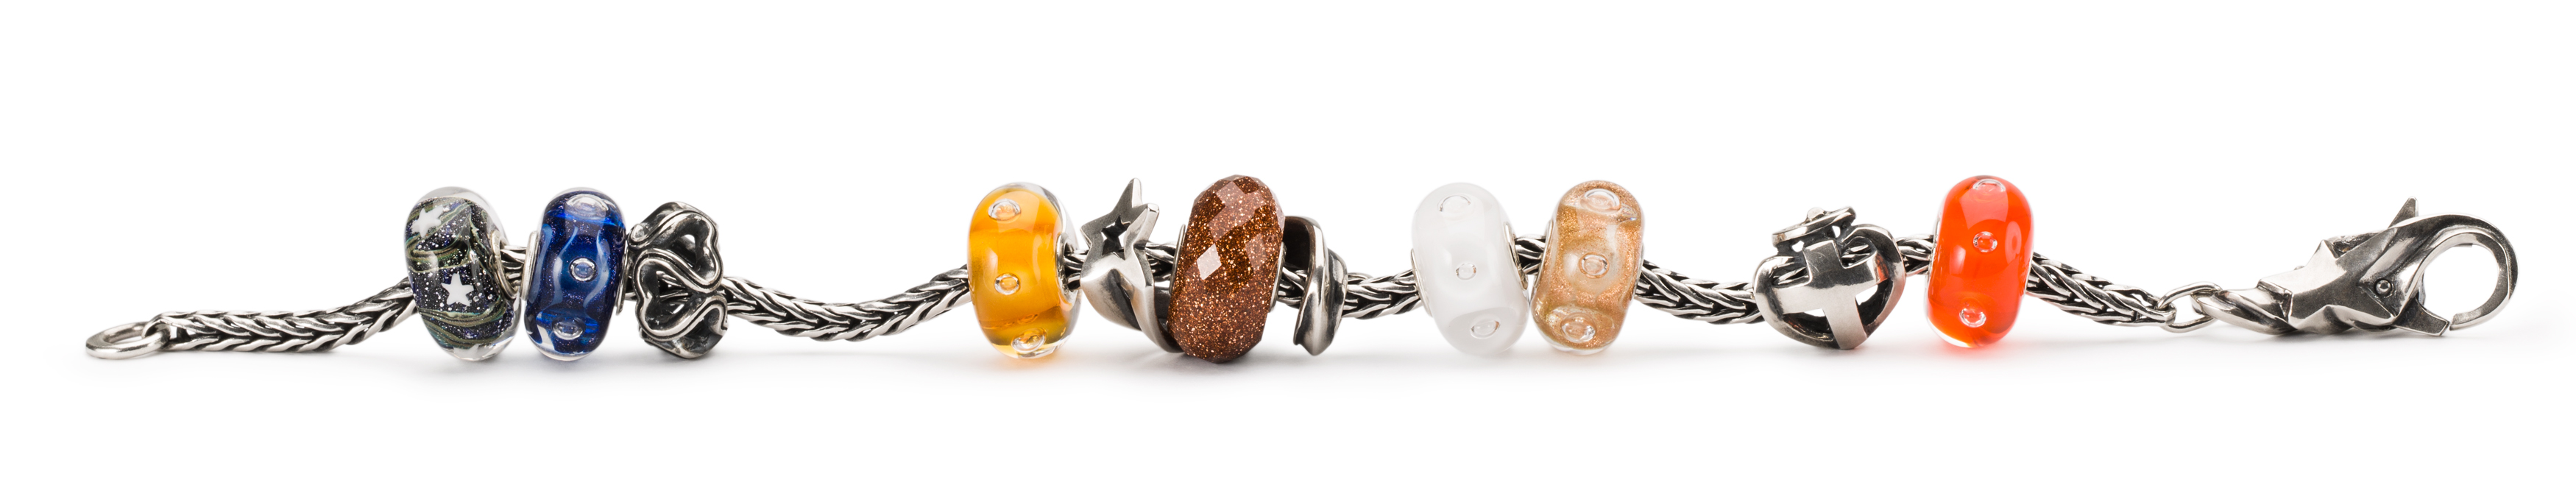 Straight bracelet displaying jewellery from the new harmony harvest collection.